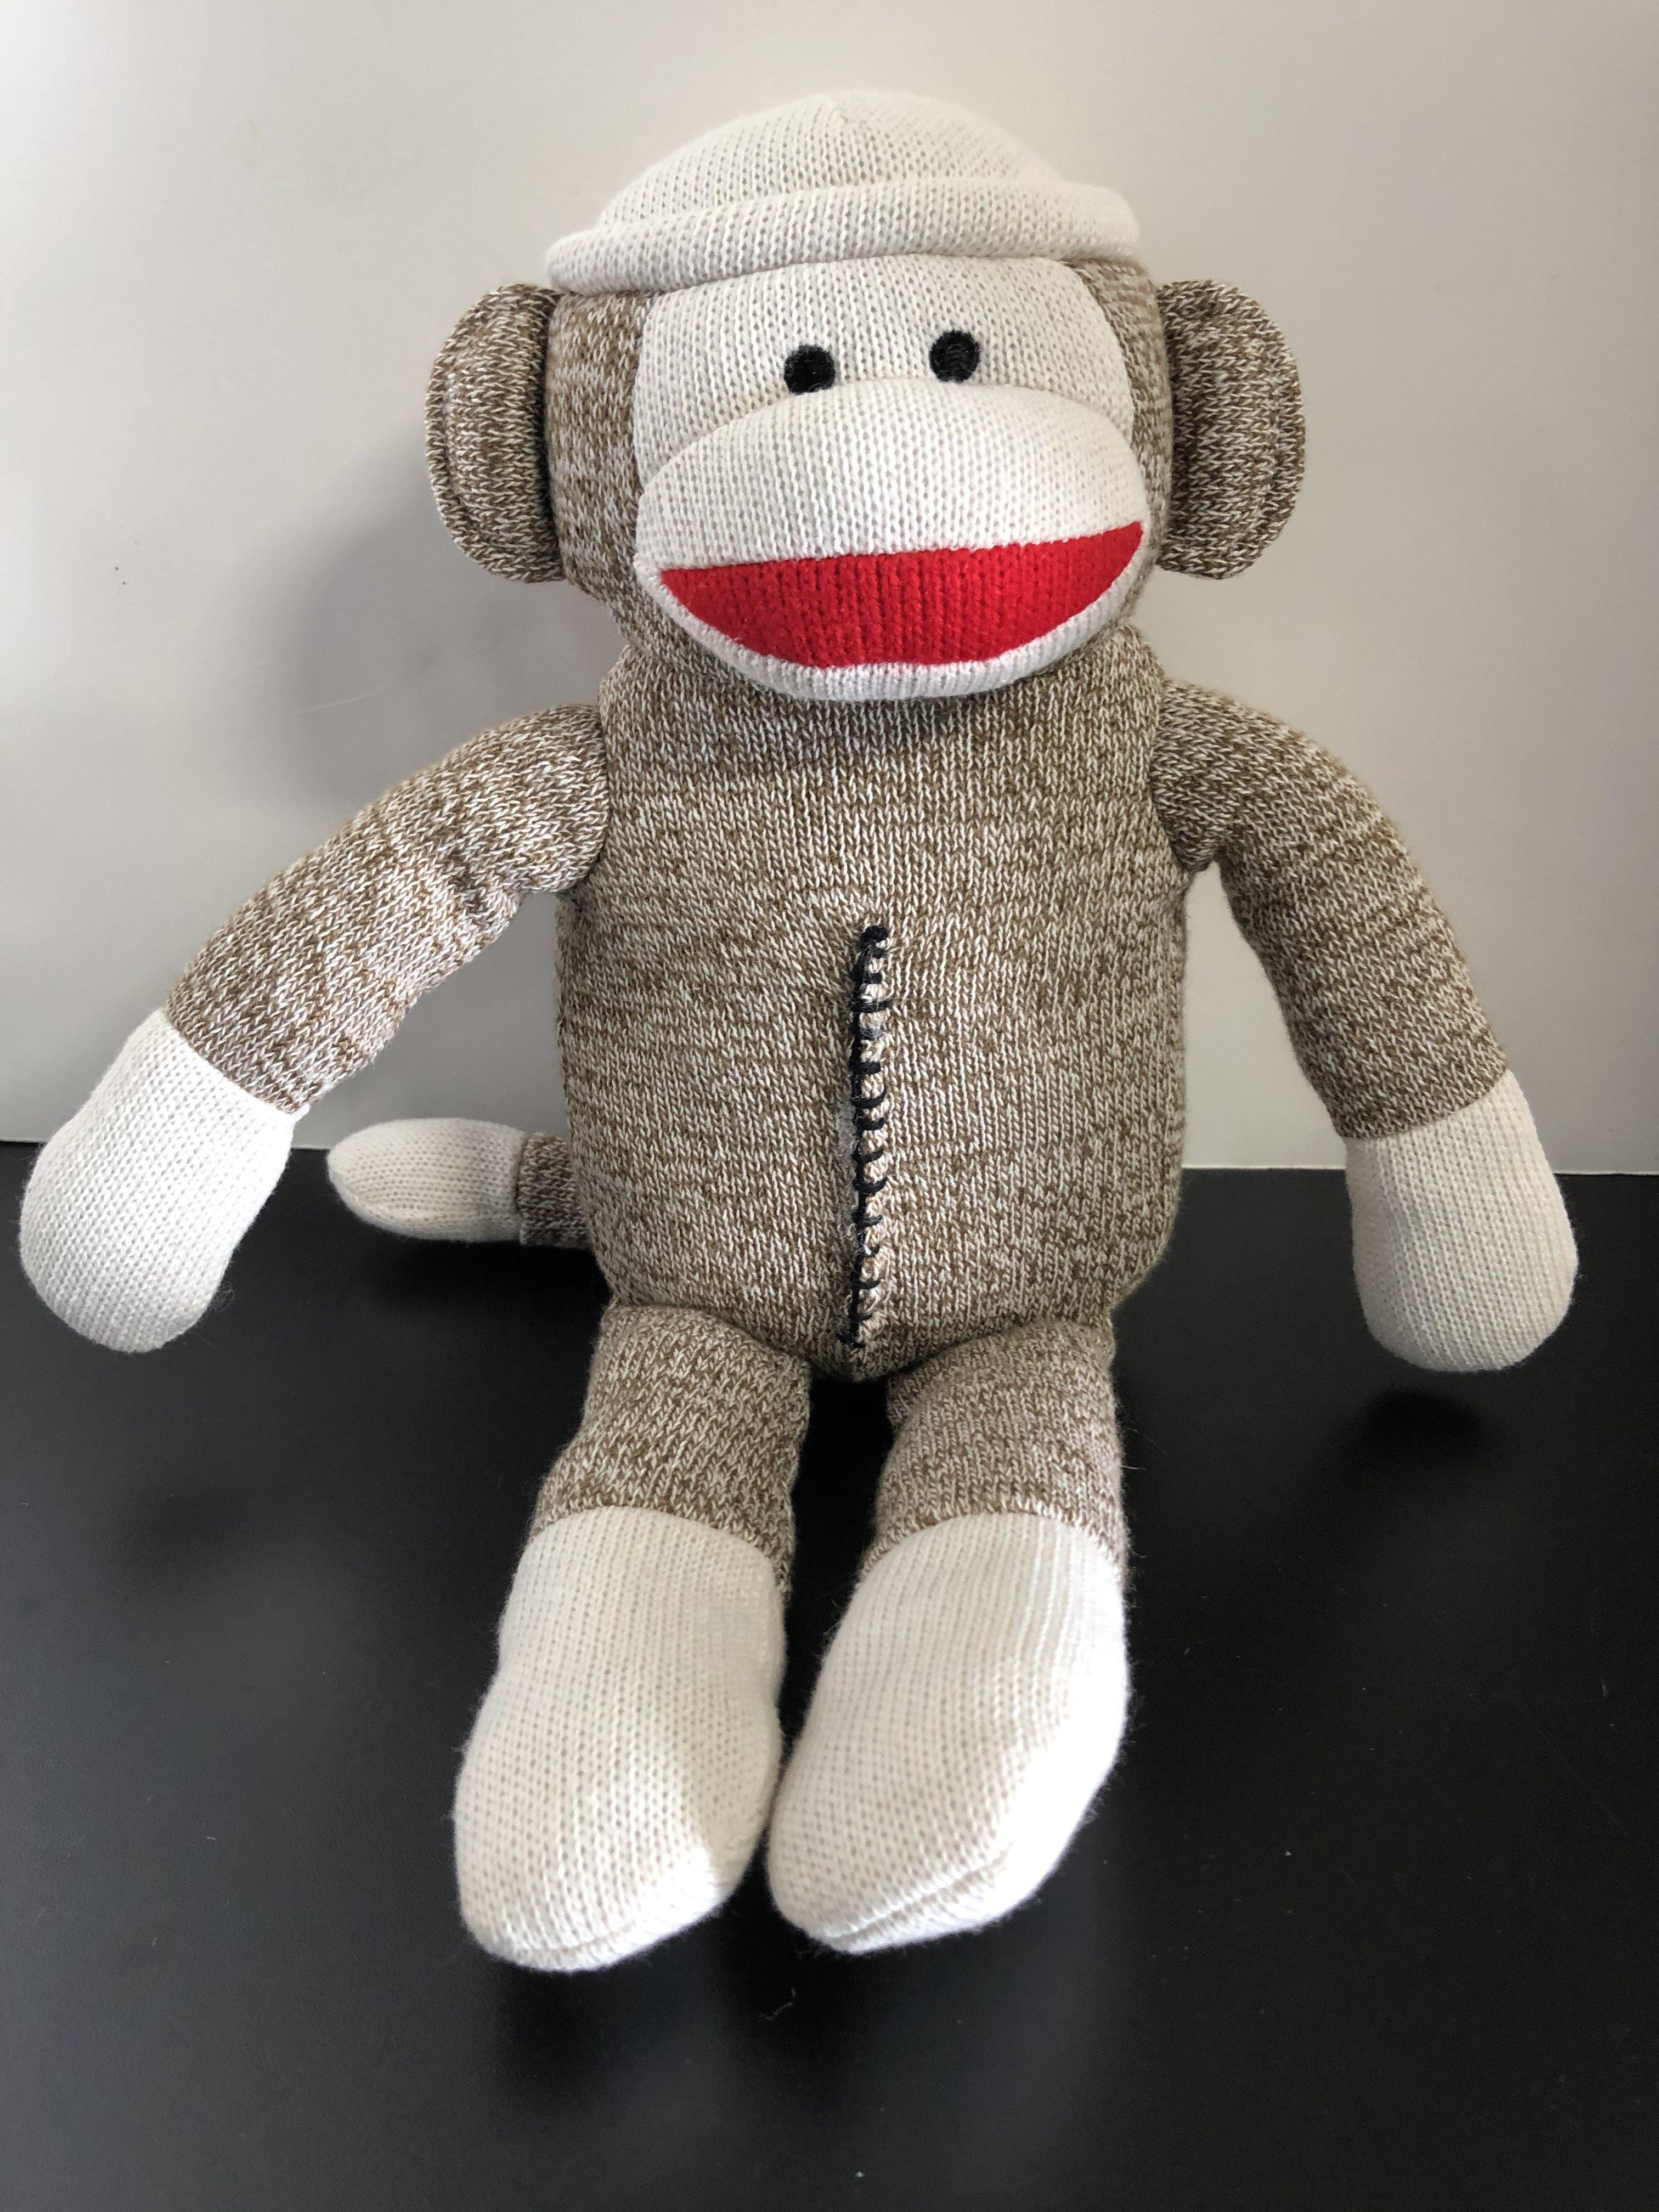 Classic Sock Monkey Stuffed SQUEAKY Toys for Dogs - Glad Dogs Nation | www.GladDogsNation.com